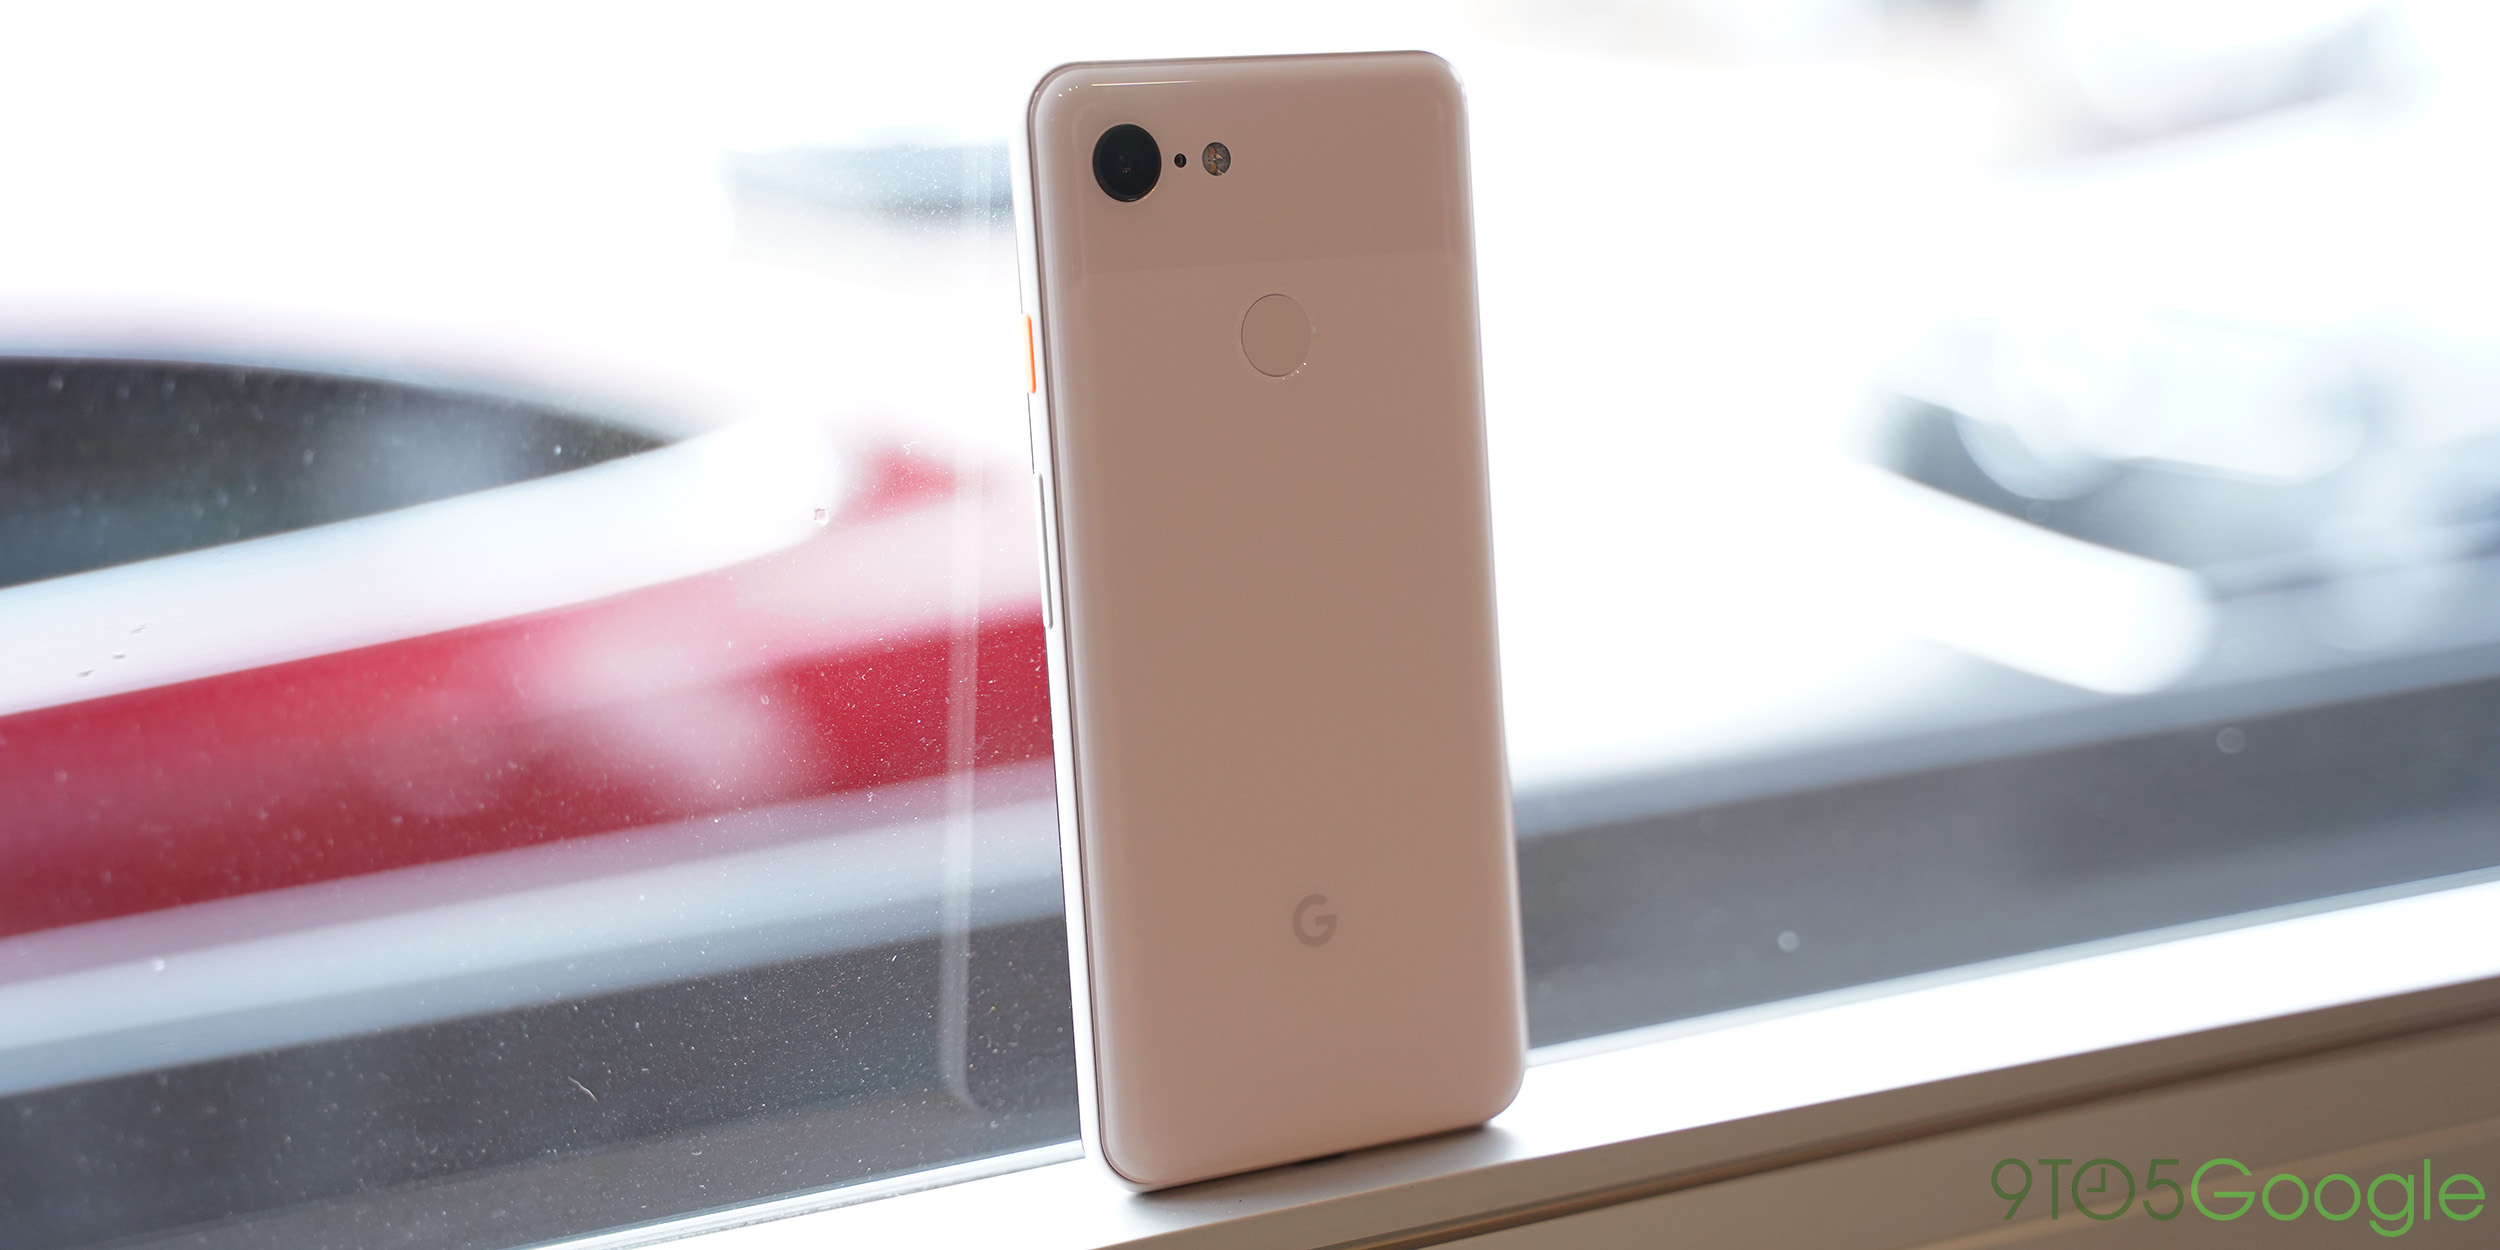 Google sent 10 phones to guy who just wanted Pixel 3 refund